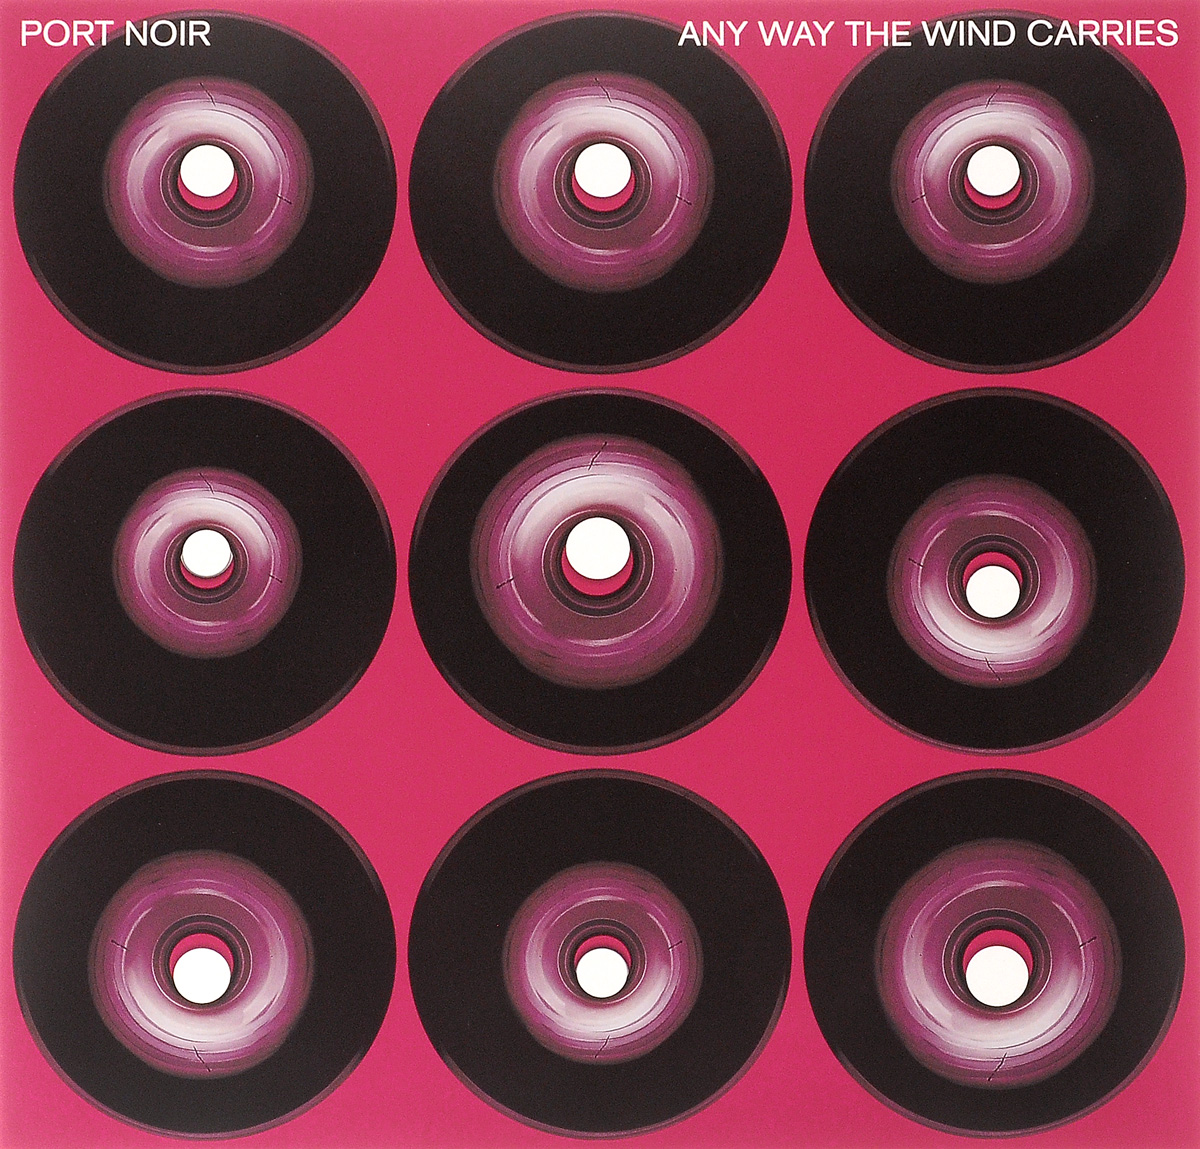 Port Noir Port Noir. Any Way The Wind Carries (LP + CD)